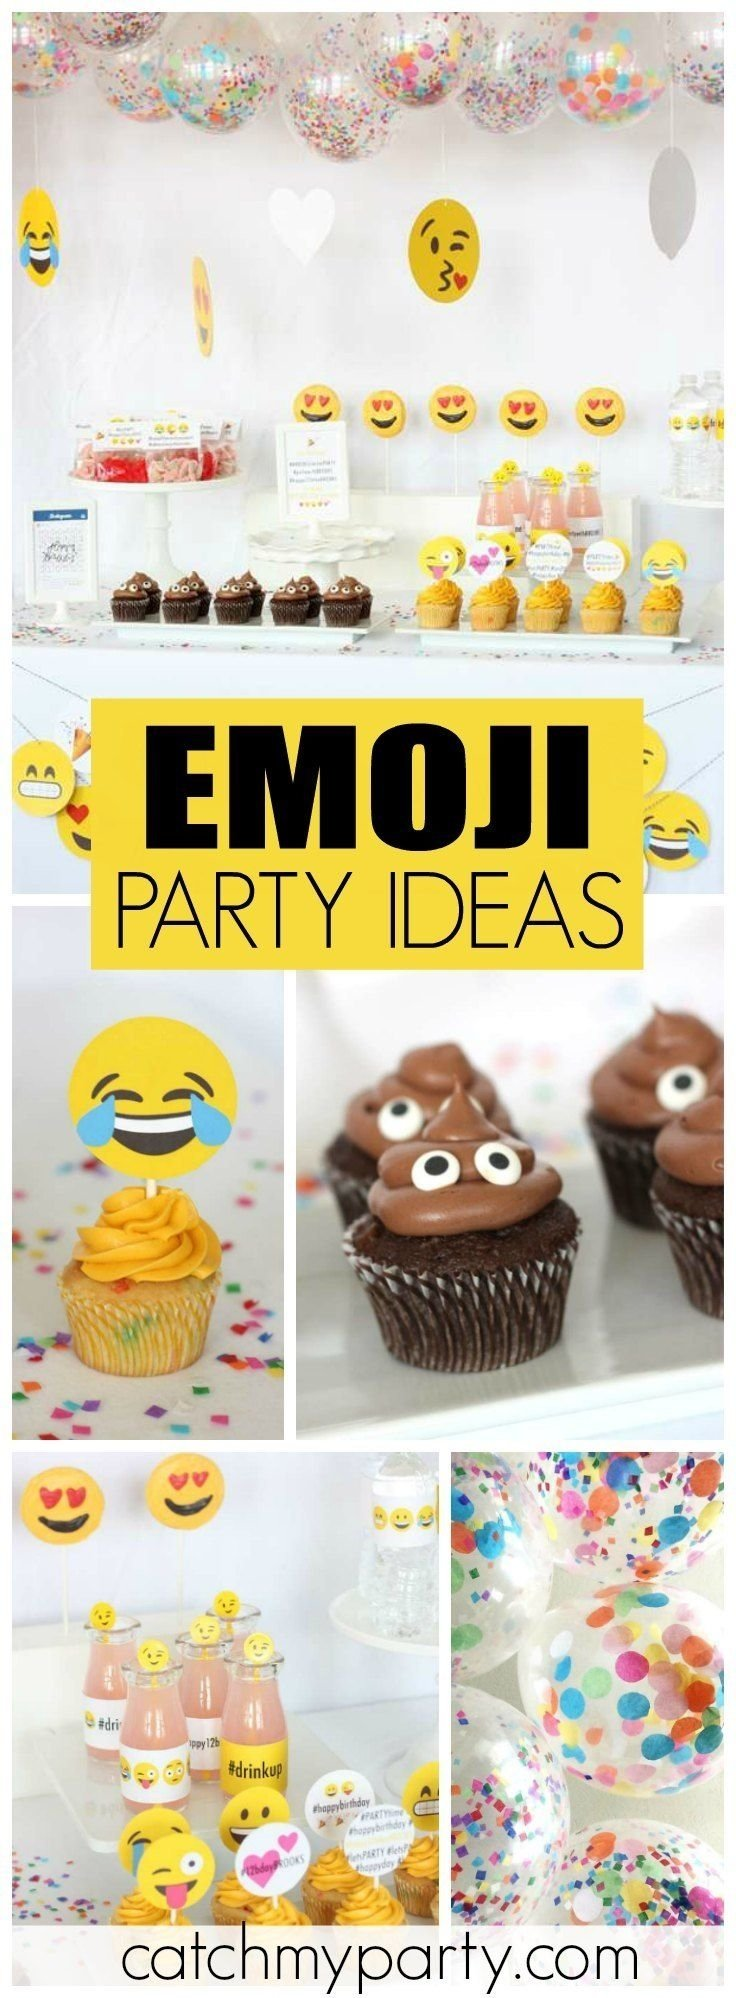 10 Most Popular 12Th Birthday Party Ideas For Girls emoji birthday emoji instagram party instagram girls girl 2021